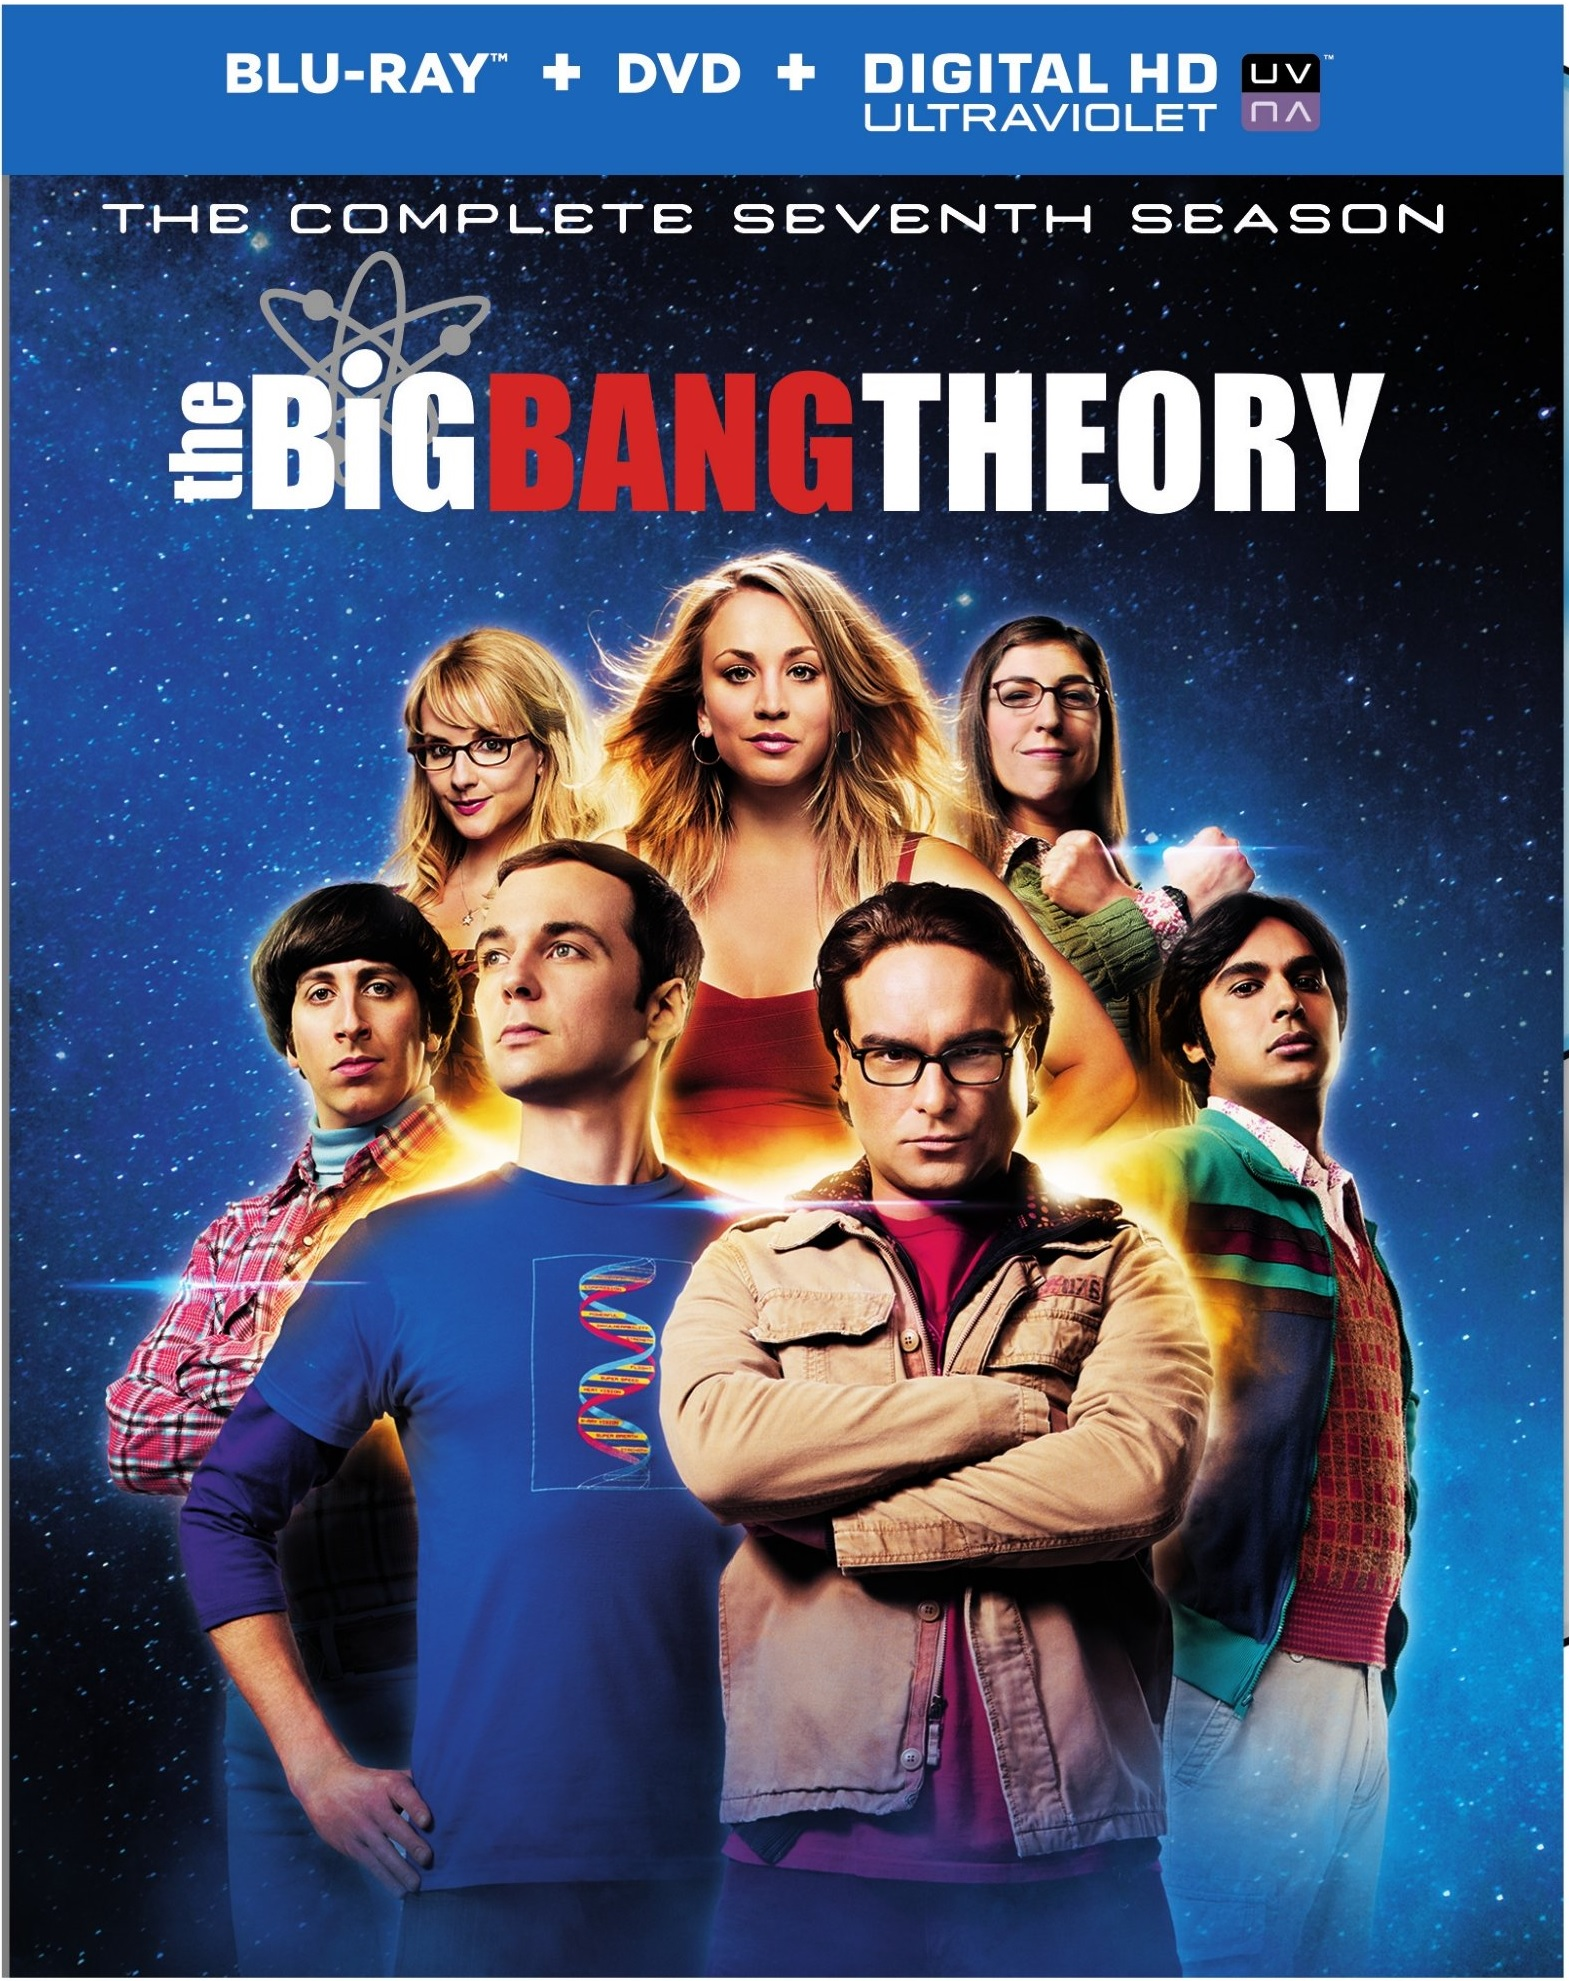 The Big Bang Theory Blu-ray Review